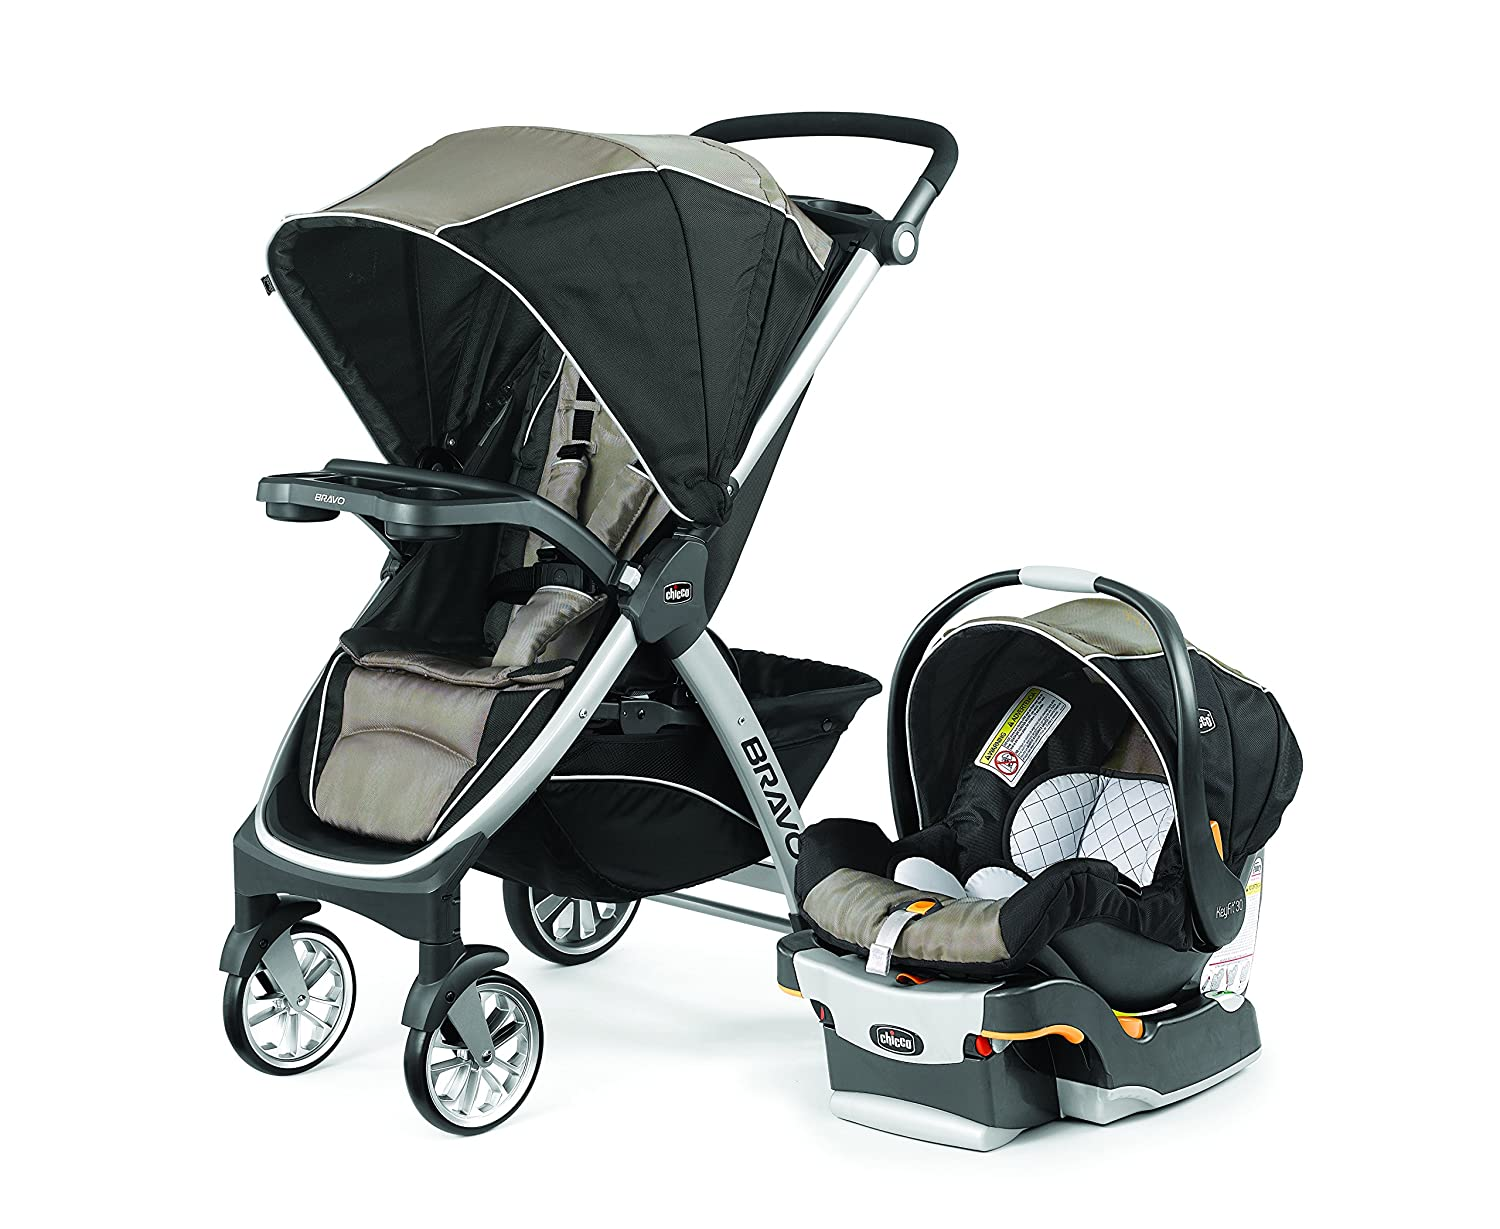 $419.99 (was $649.99) Chicco Bravo Kf30 Travel System Champagne, Black